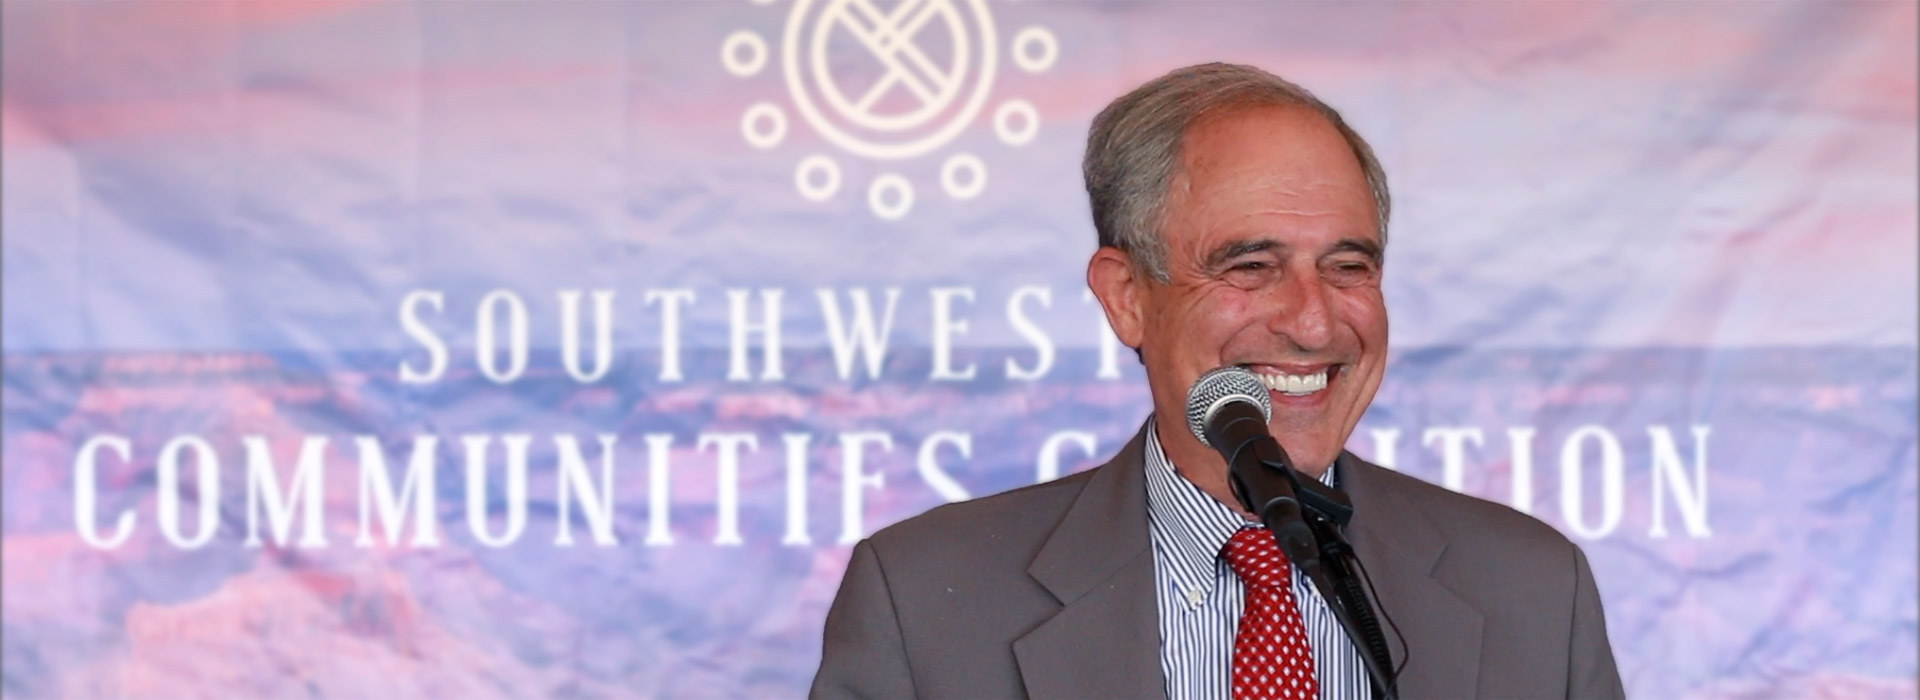 Fact's Matter: Lanny Davis Delivers Passionate Address at SW Communities Coalition Luncheon